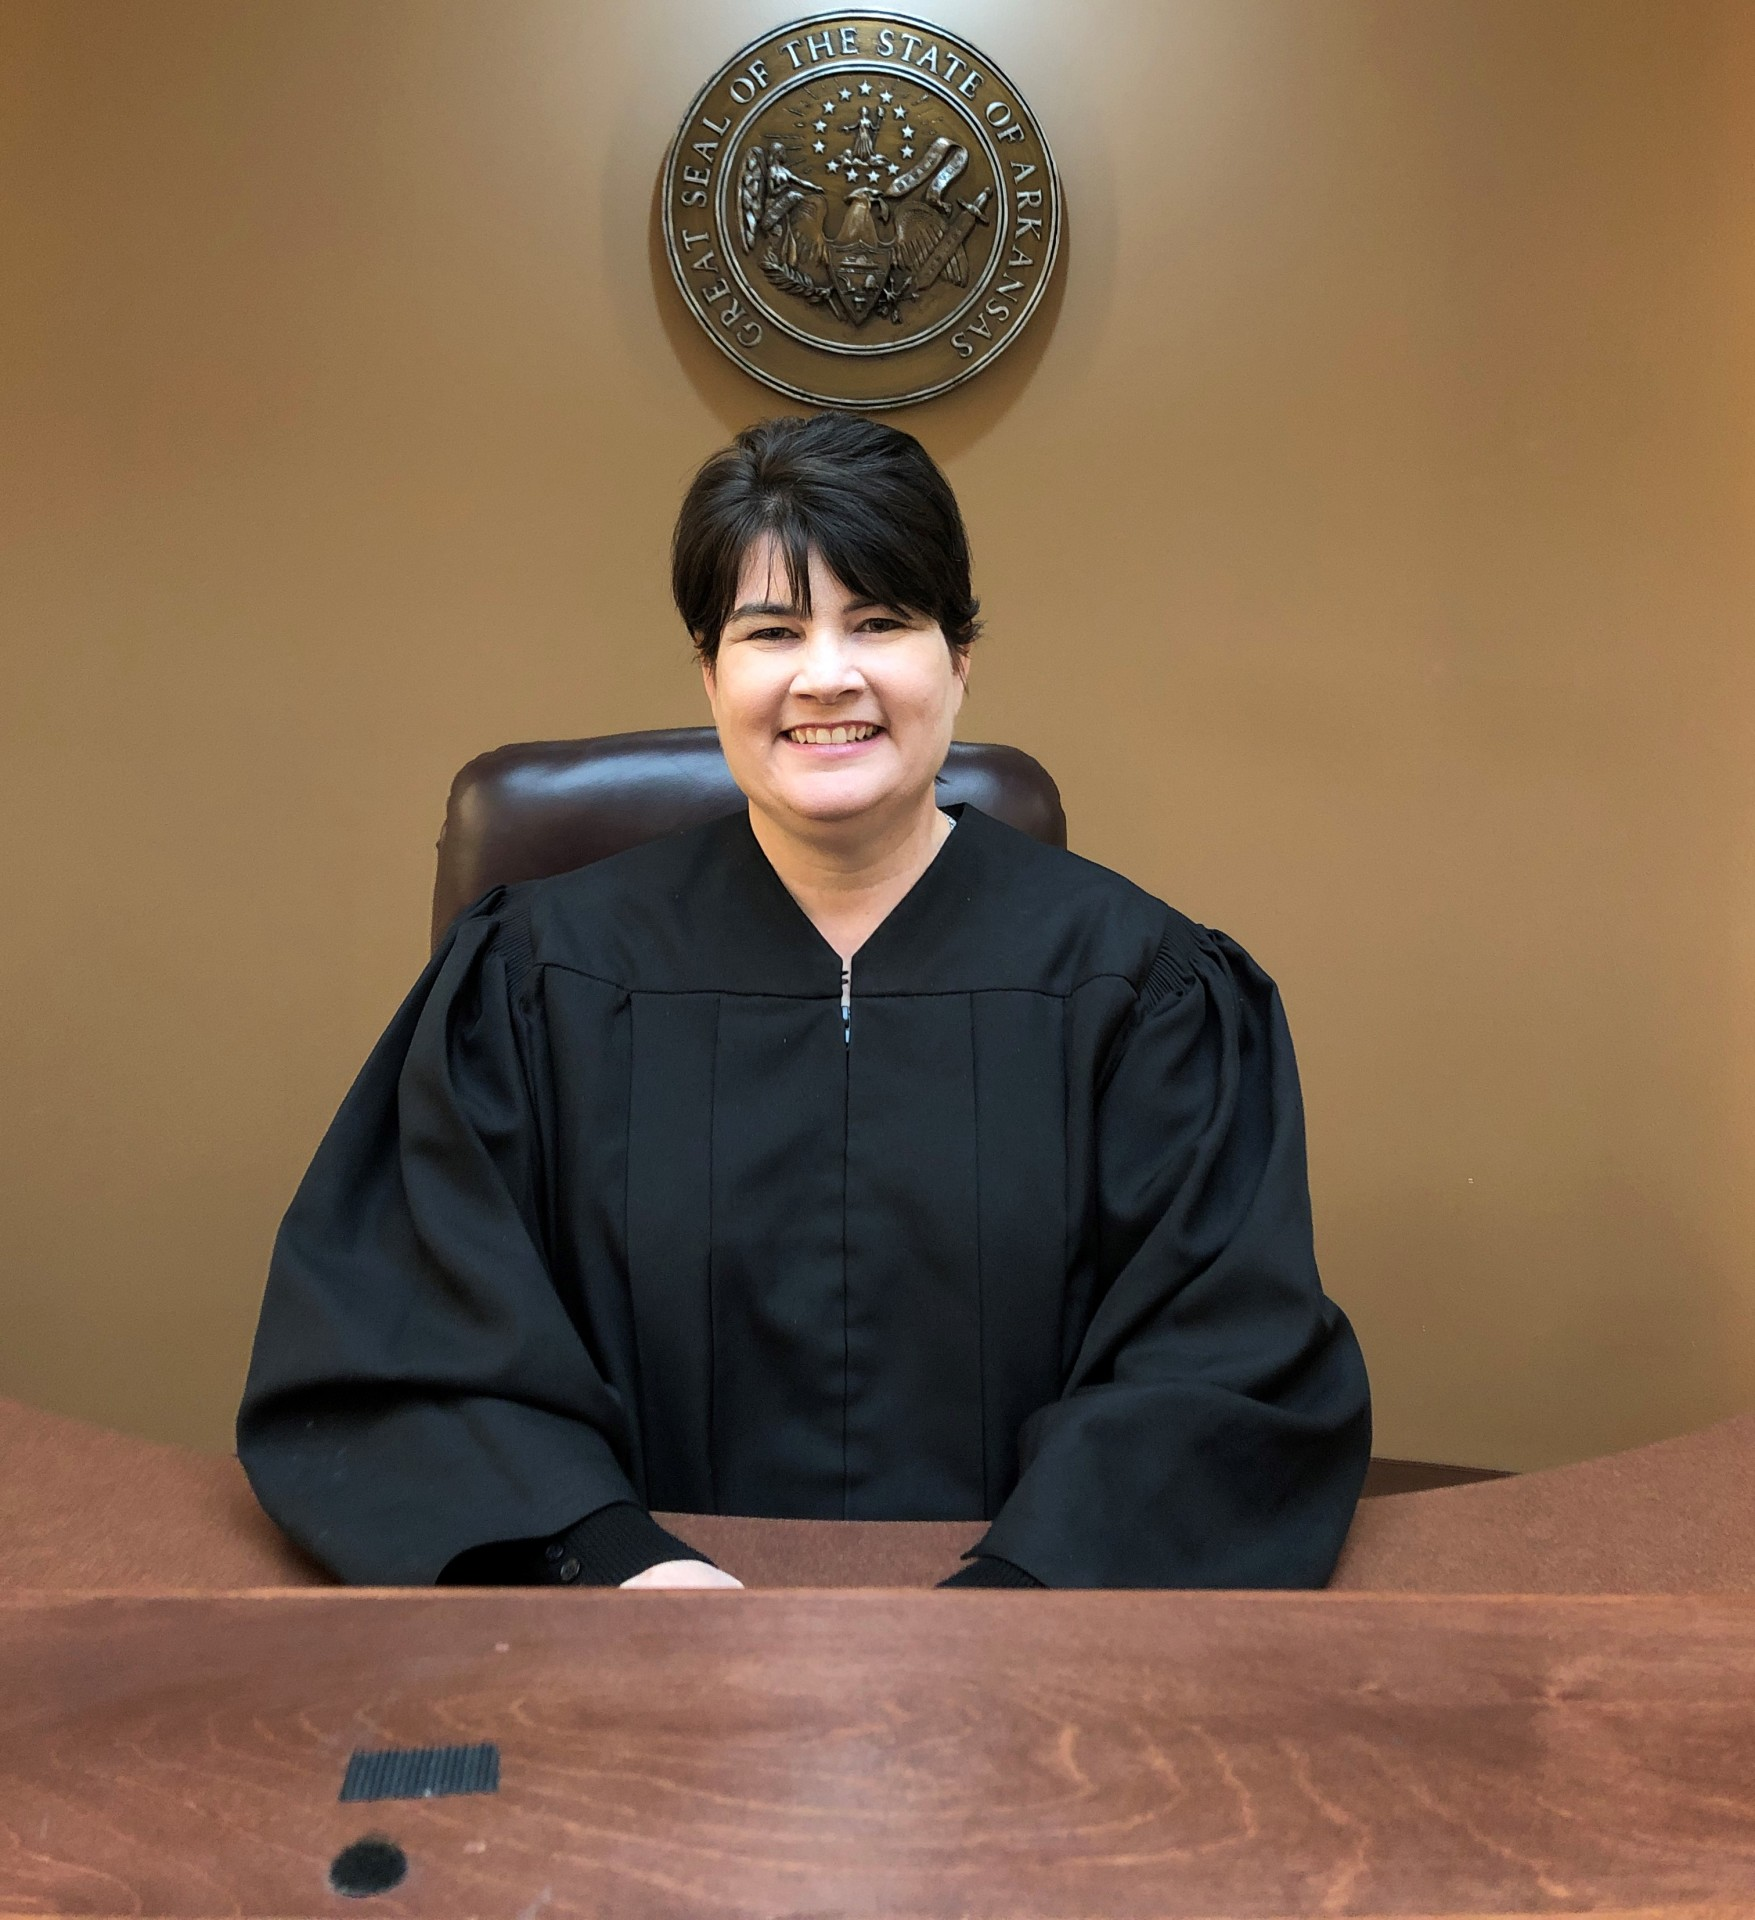 Collins announces candidacy for new judge position